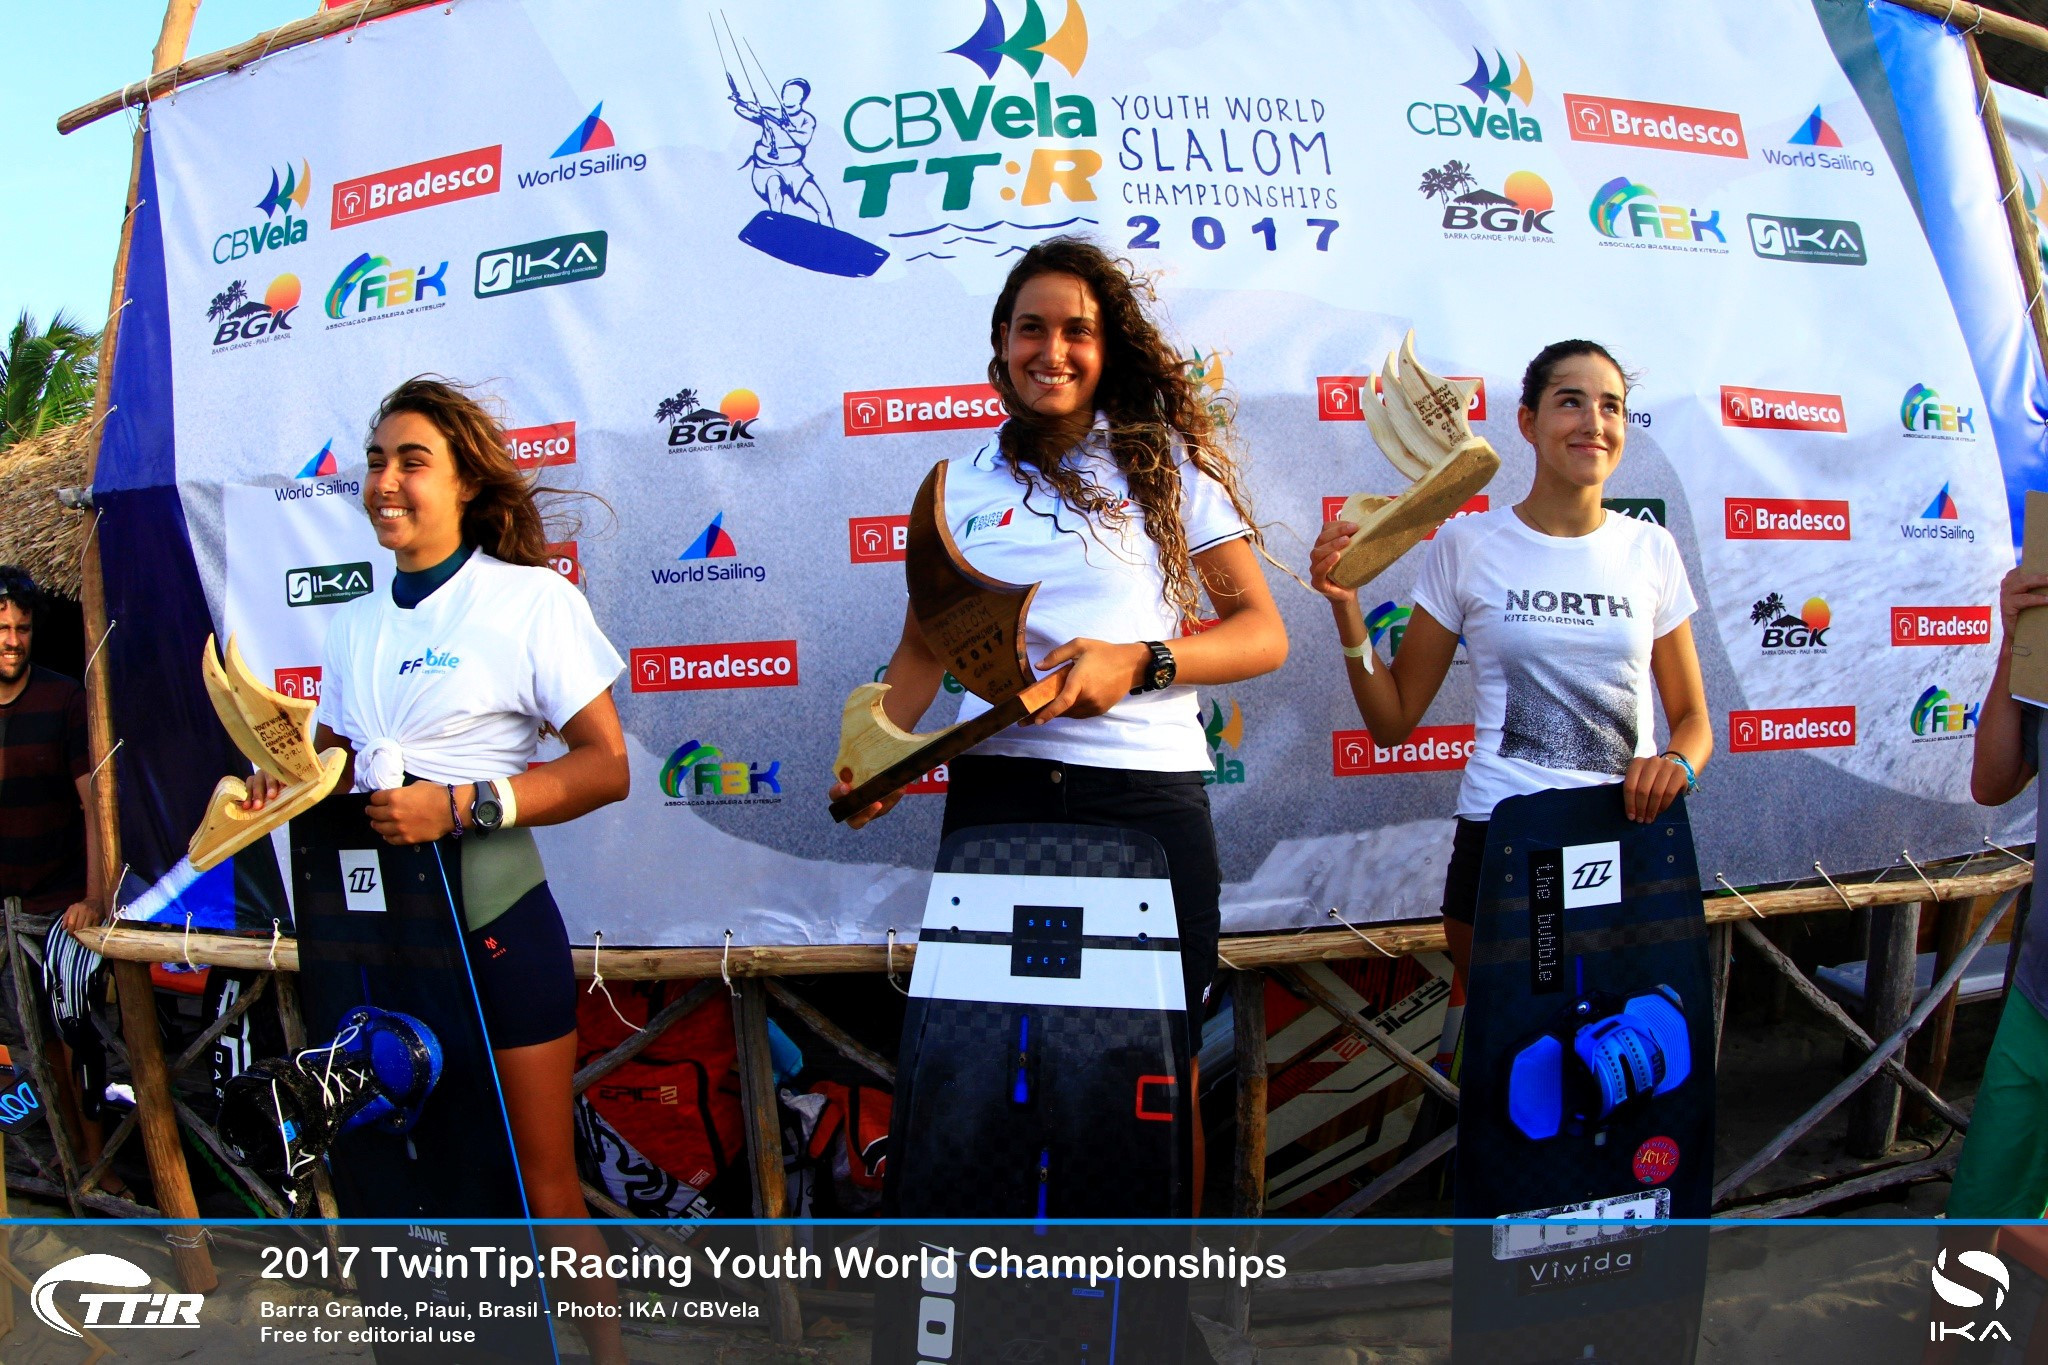 Europeans dominate youth kiteboarding championships in Brazil